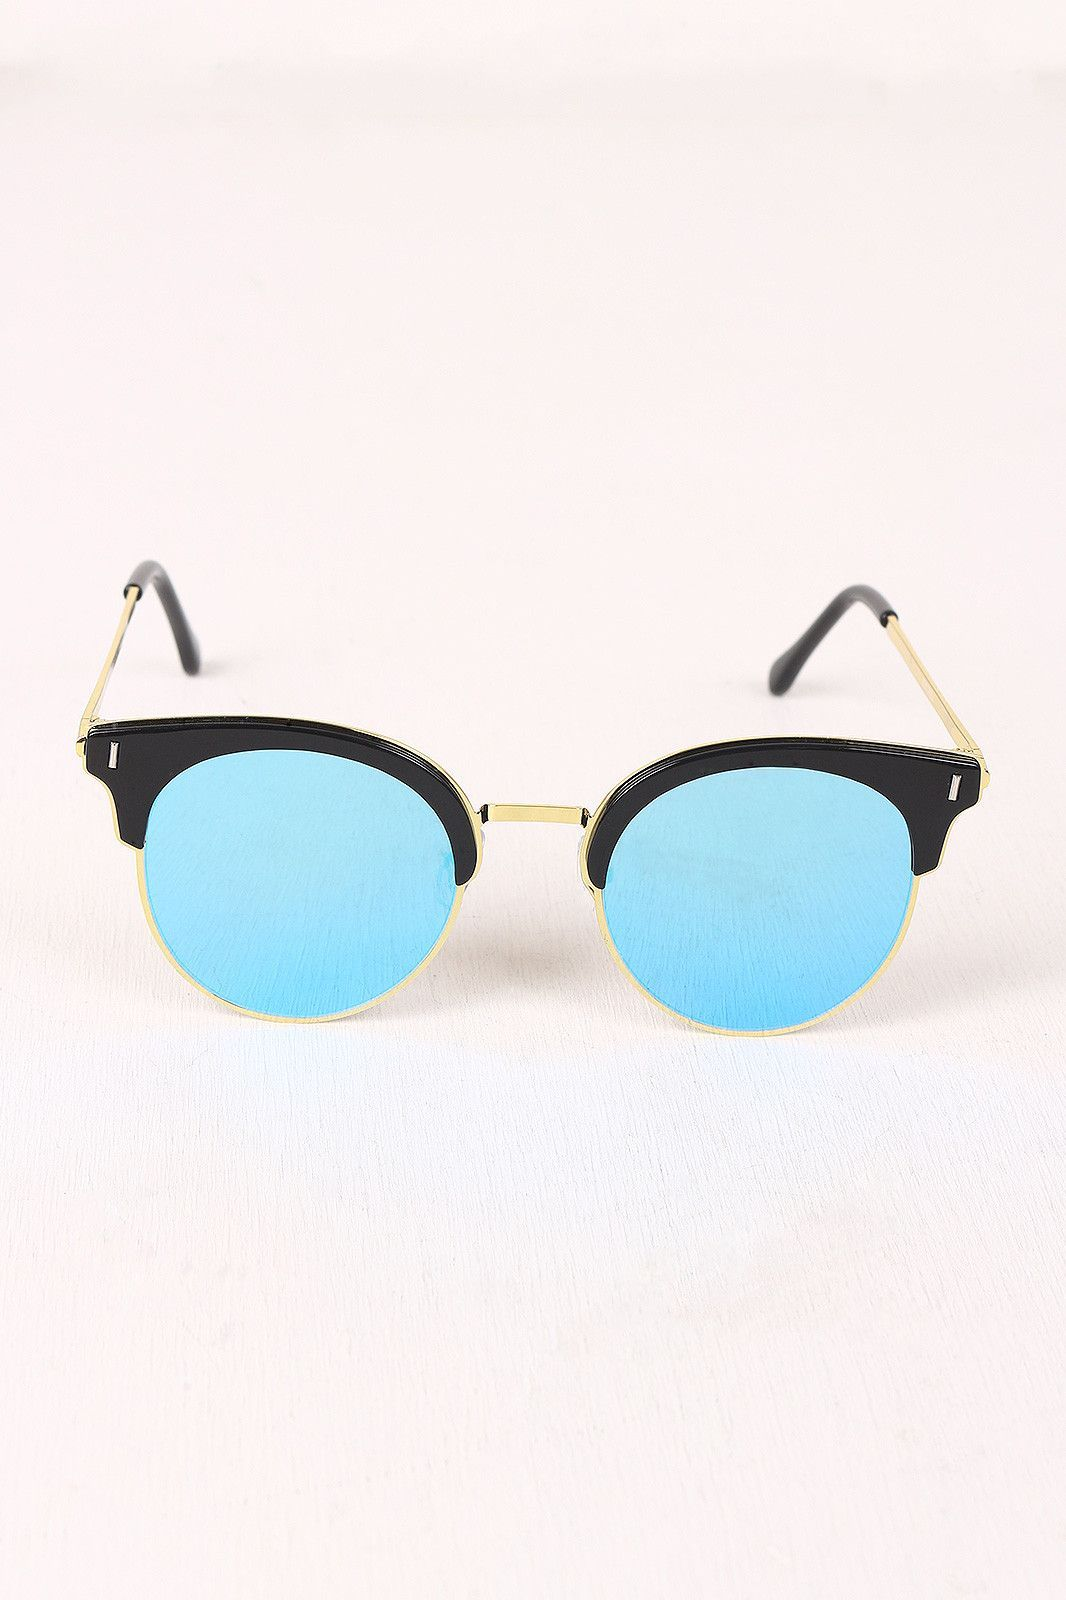 064663ae43 These clubmaster-style sunglasses feature a round mirrored lenses with  plastic brow detail